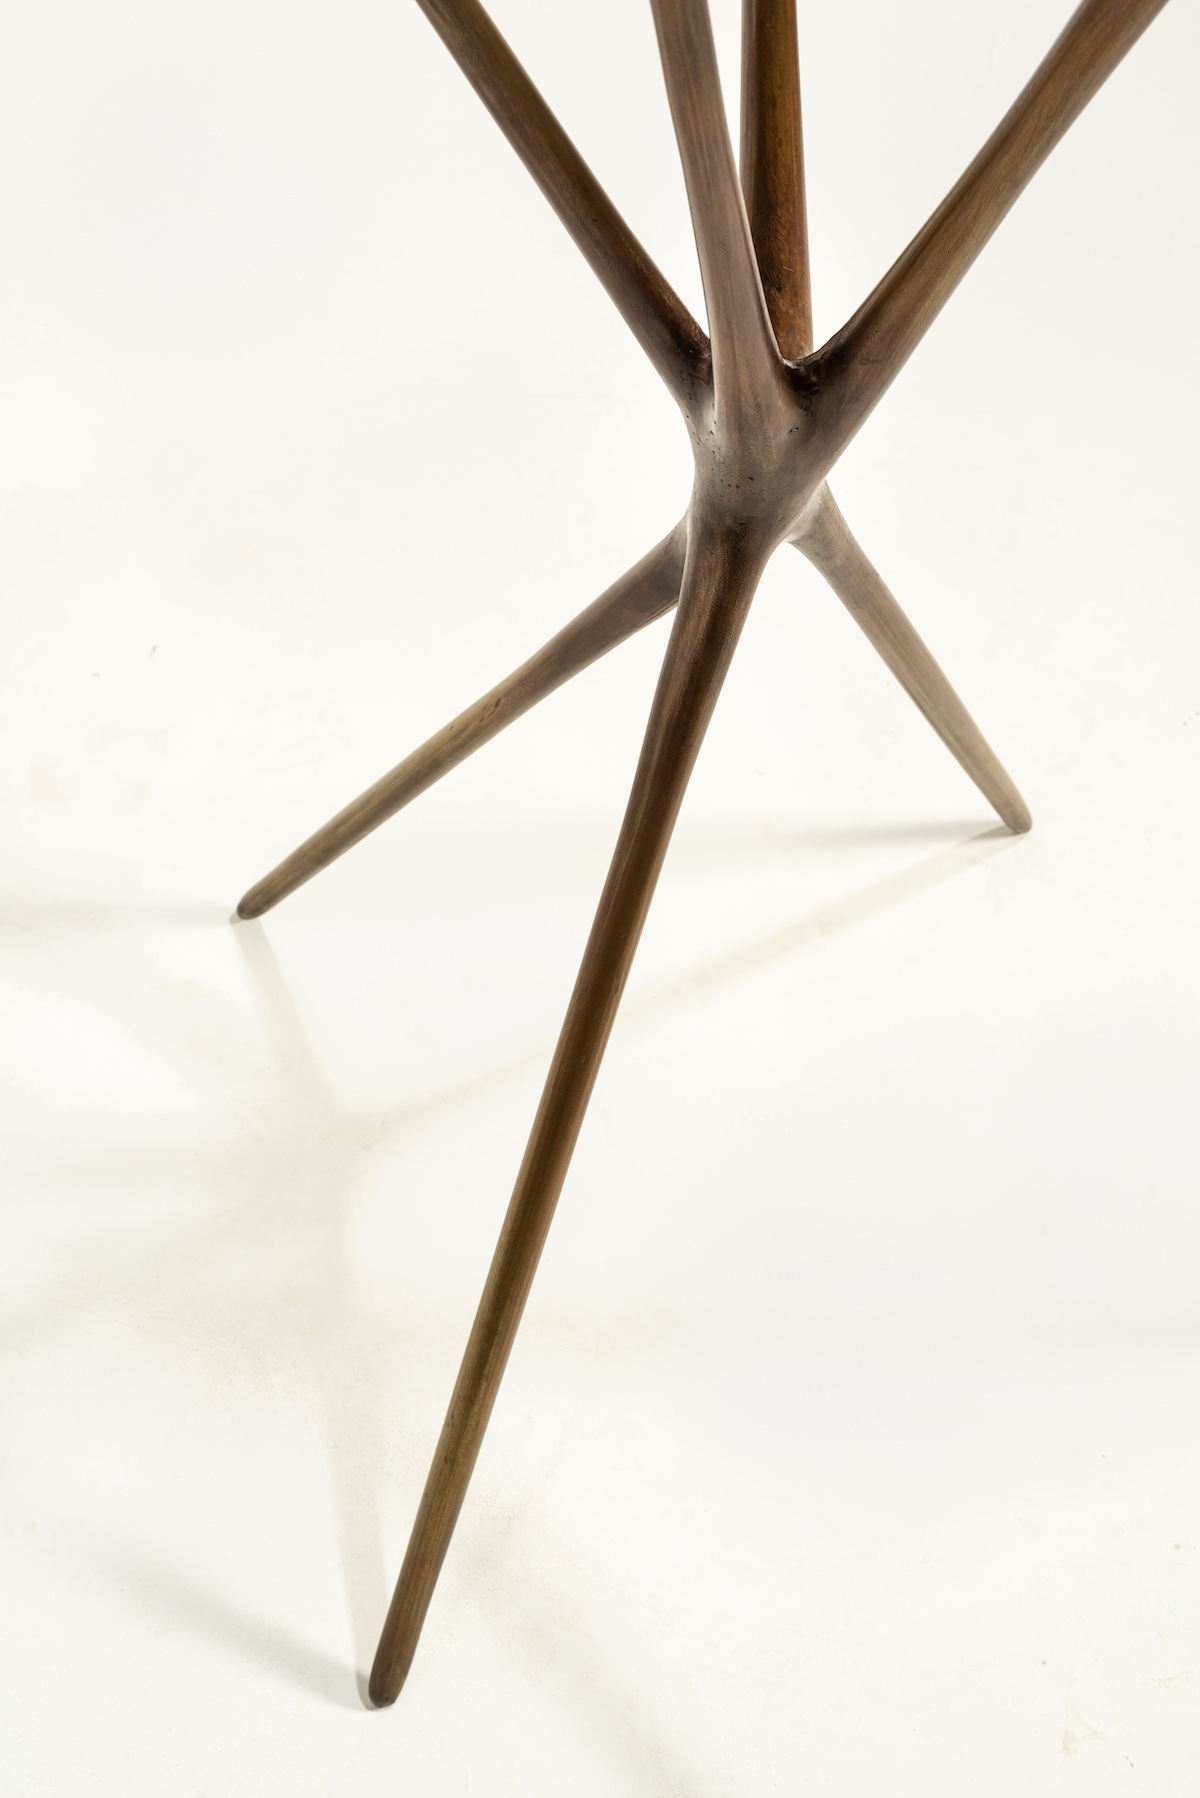 point detail of Untitled (Standing Sculpture) by Christopher Kurtz